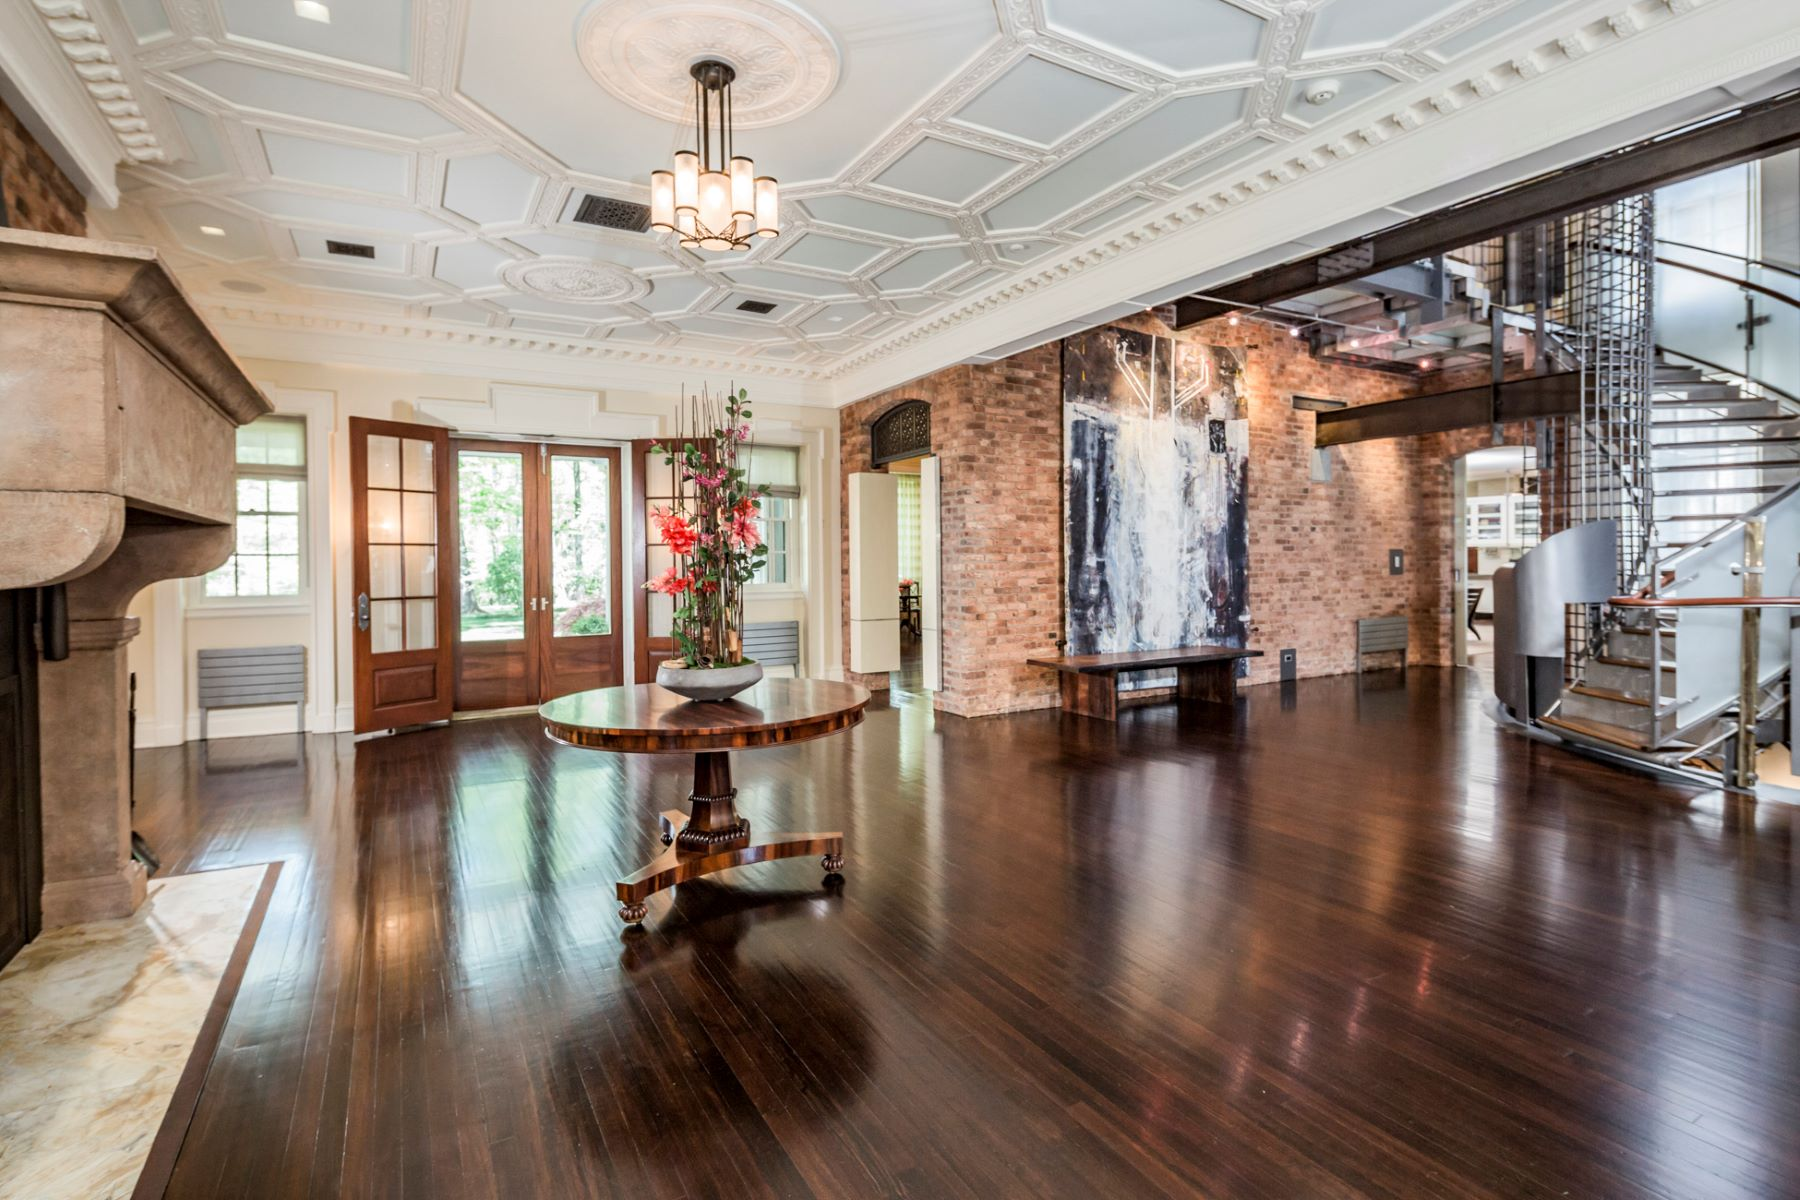 Additional photo for property listing at Historic Pyne Mansion 211 Winant Road, Princeton, New Jersey 08540 United States